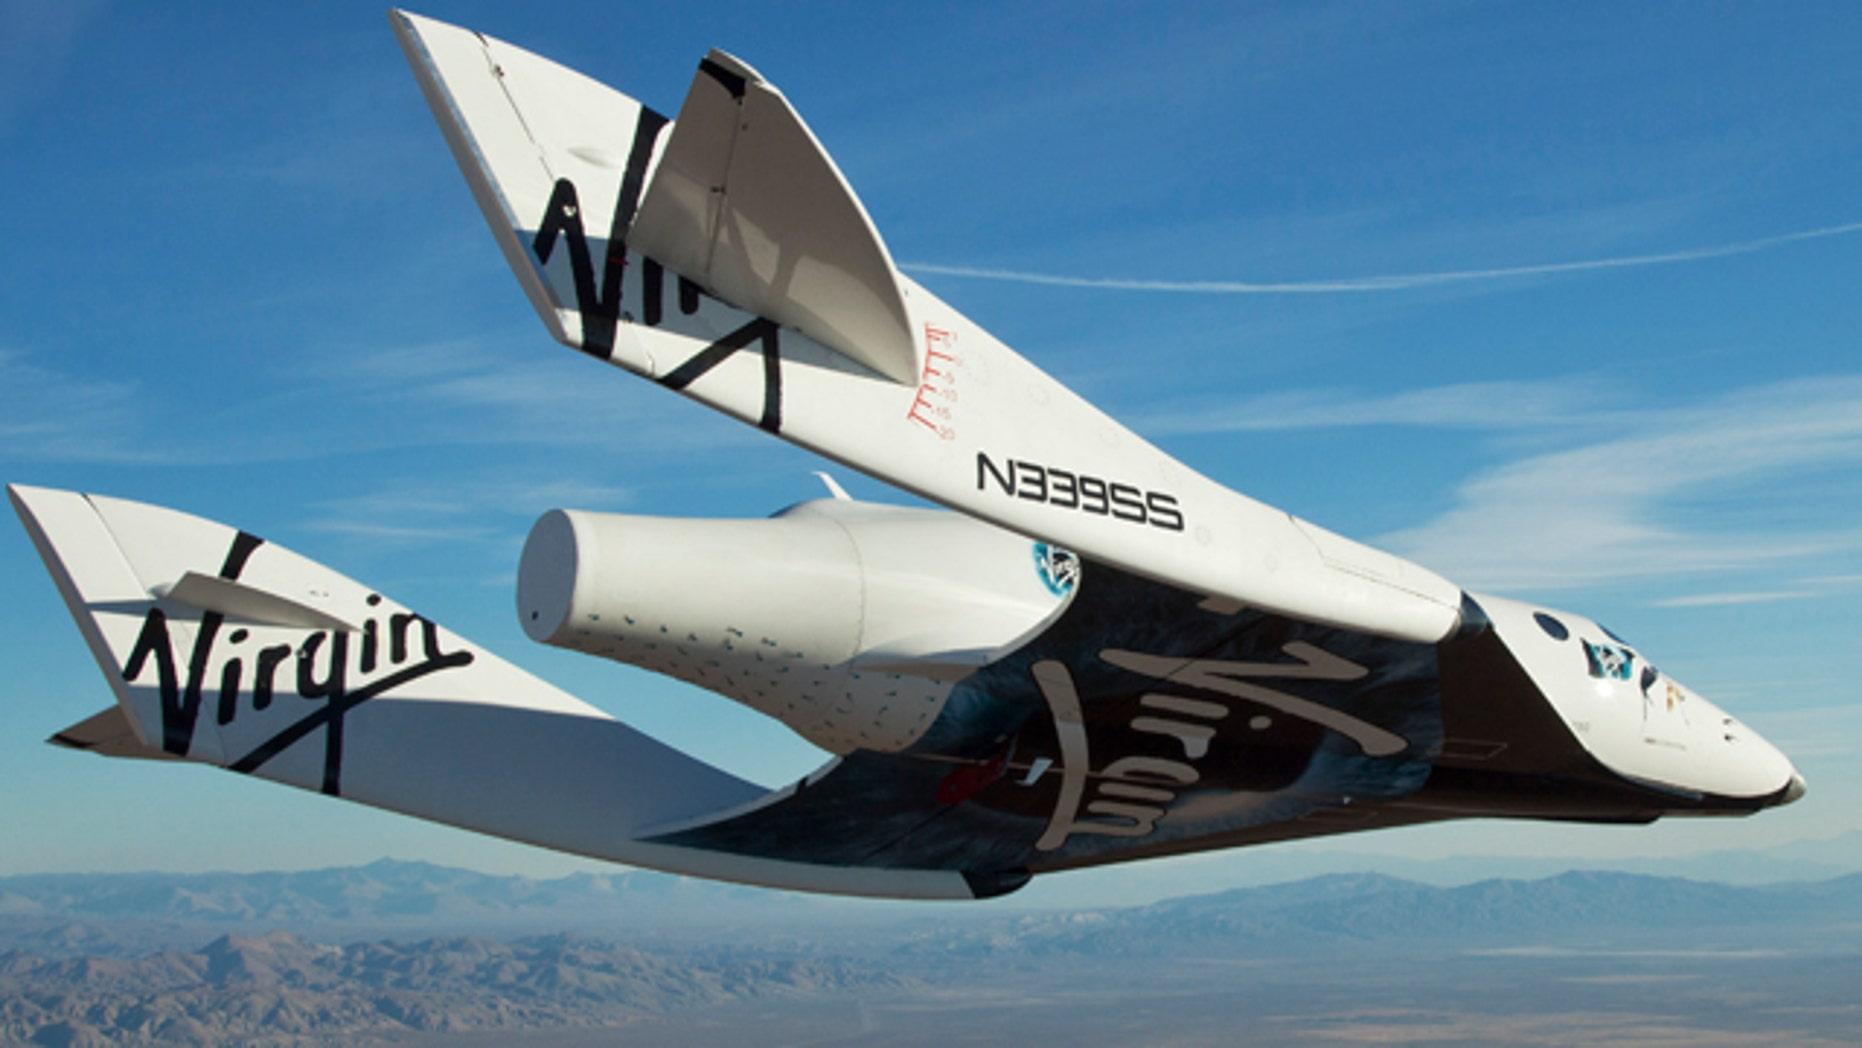 Oct. 10: In this photo released by Virgin Galactic, the Virgin Galactic SpaceShipTwo, or VSS Enterprise, glides toward the earth on its first test flight after release from the mothership, WhiteKnight2, also known as VMS Eve, over the Mojave, Calif., area.